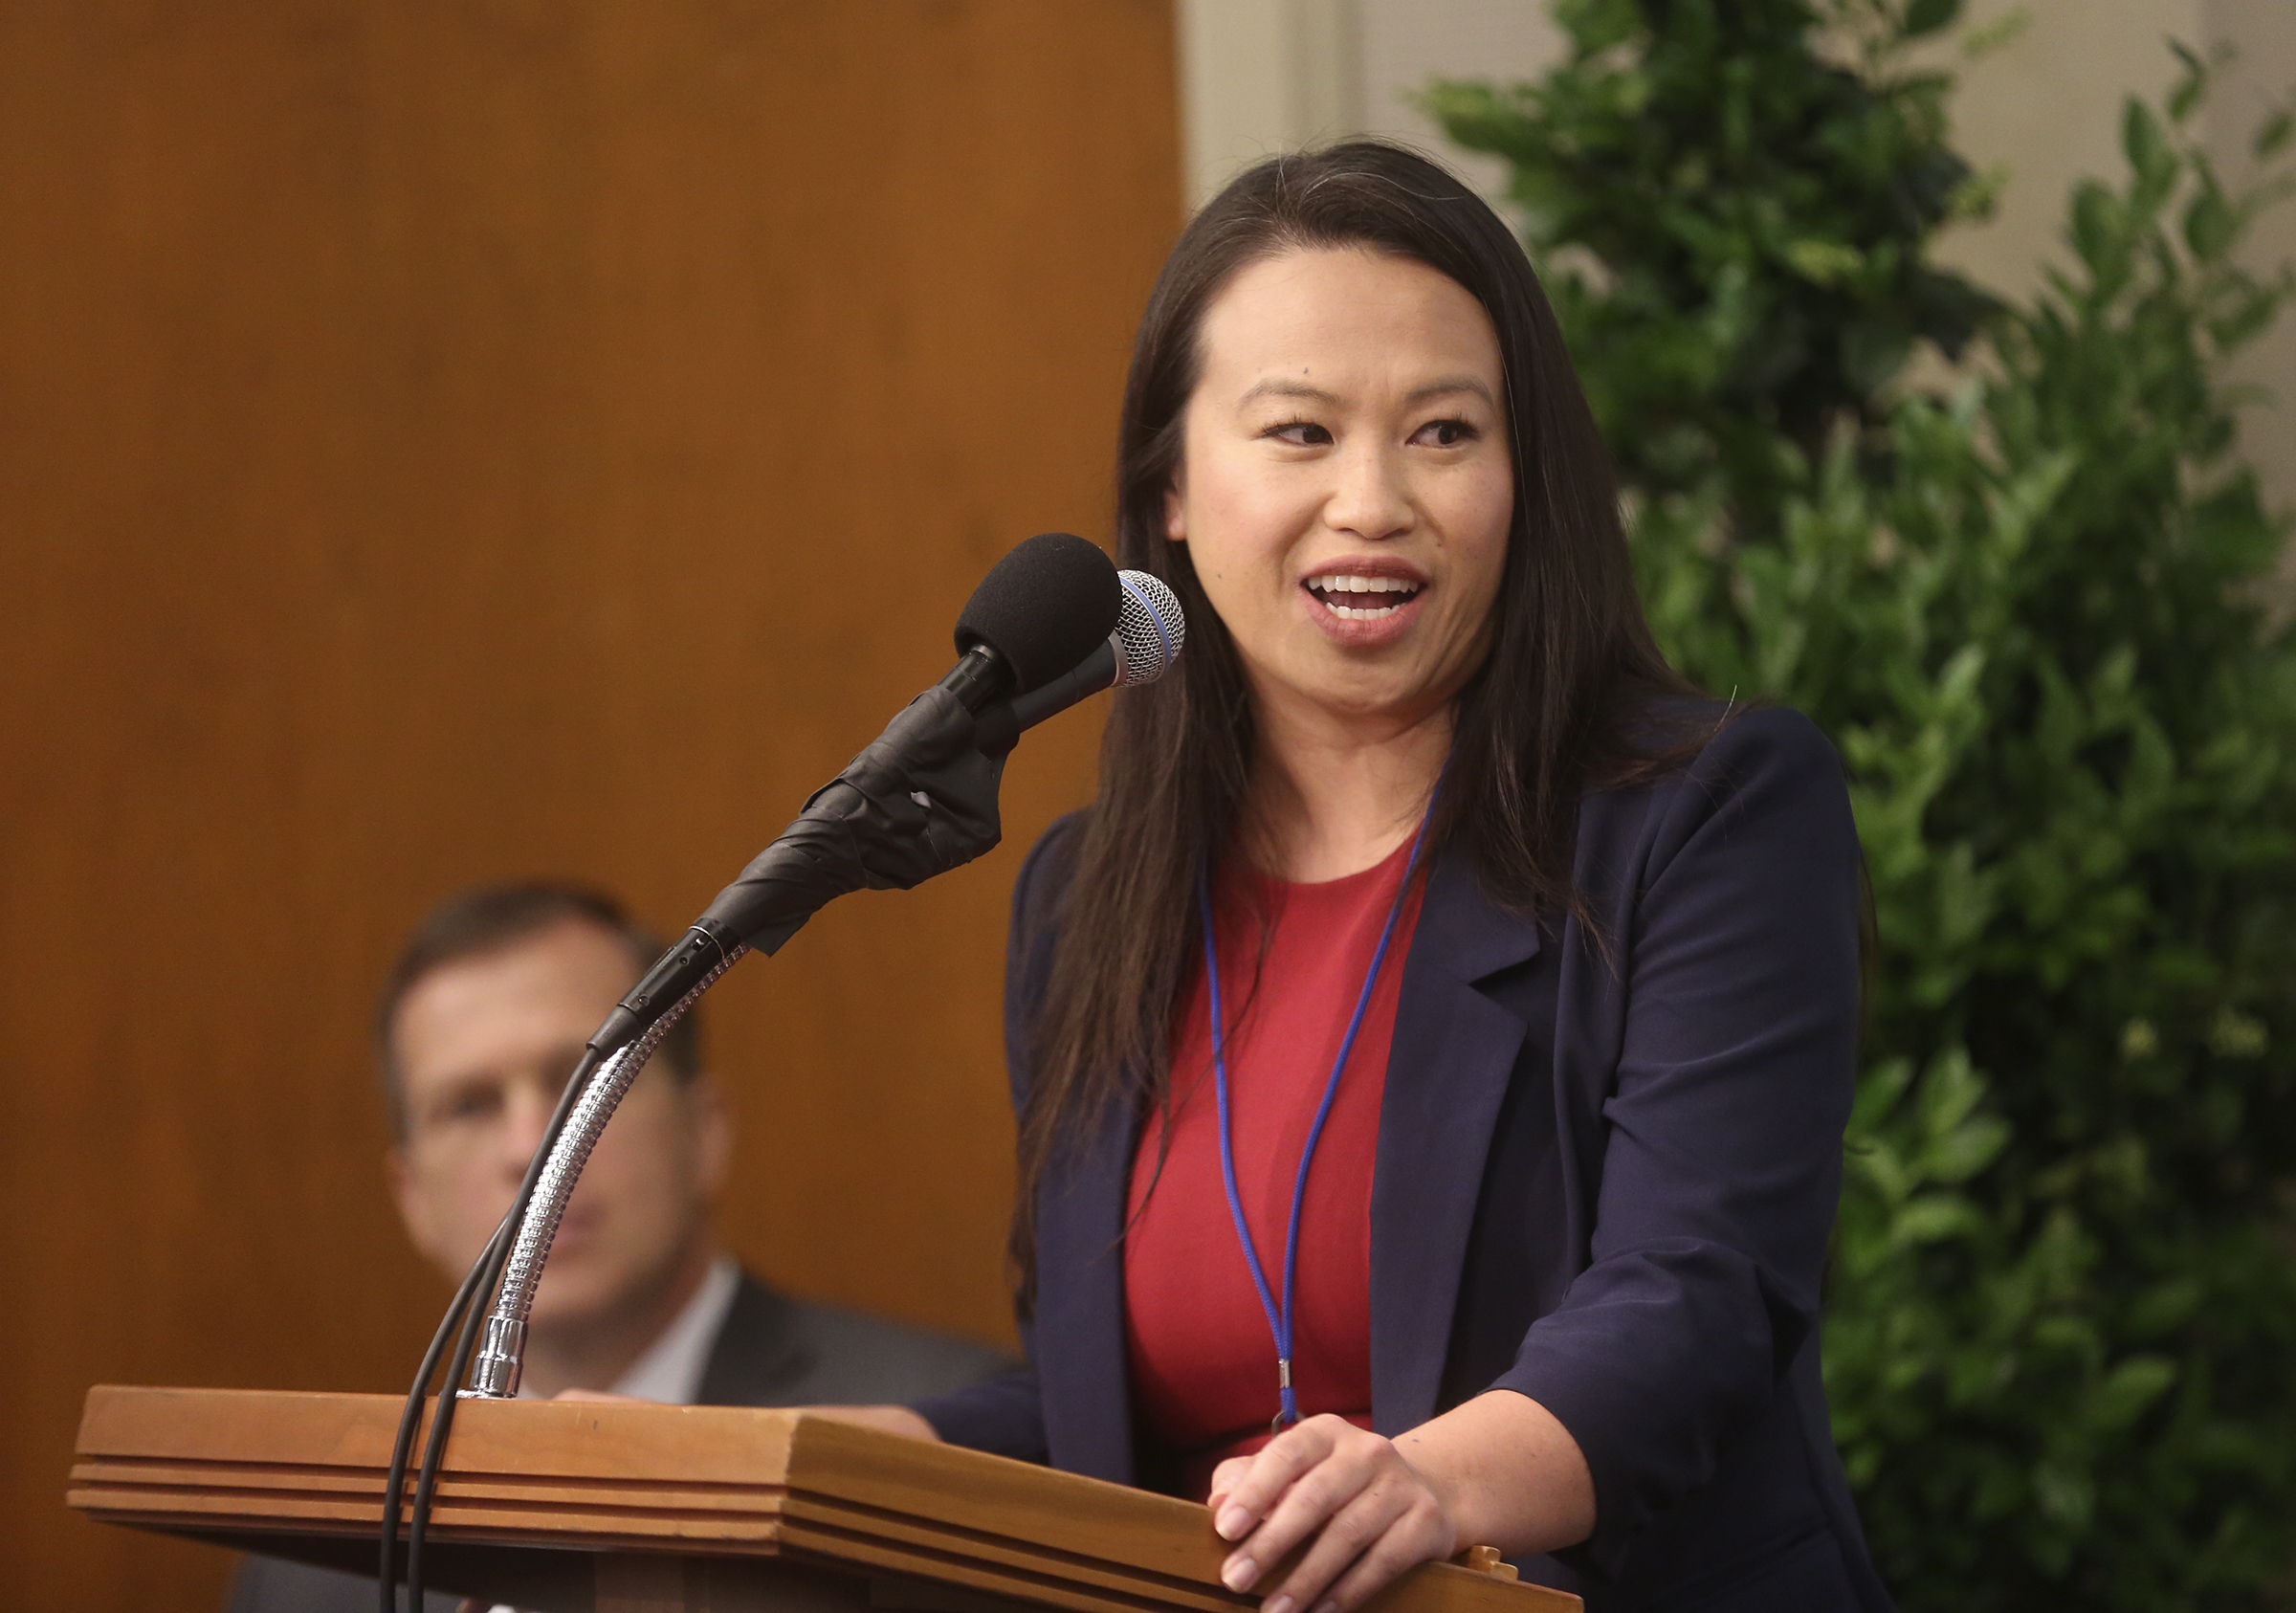 Sheng Tao, Oakland city councilwoman, speaks during a news conference held in the visitors' center for the newly renovated Oakland California Temple, of The Church of Jesus Christ of Latter-day Saints, in Oakland, Calif., on Monday, May 6, 2019.